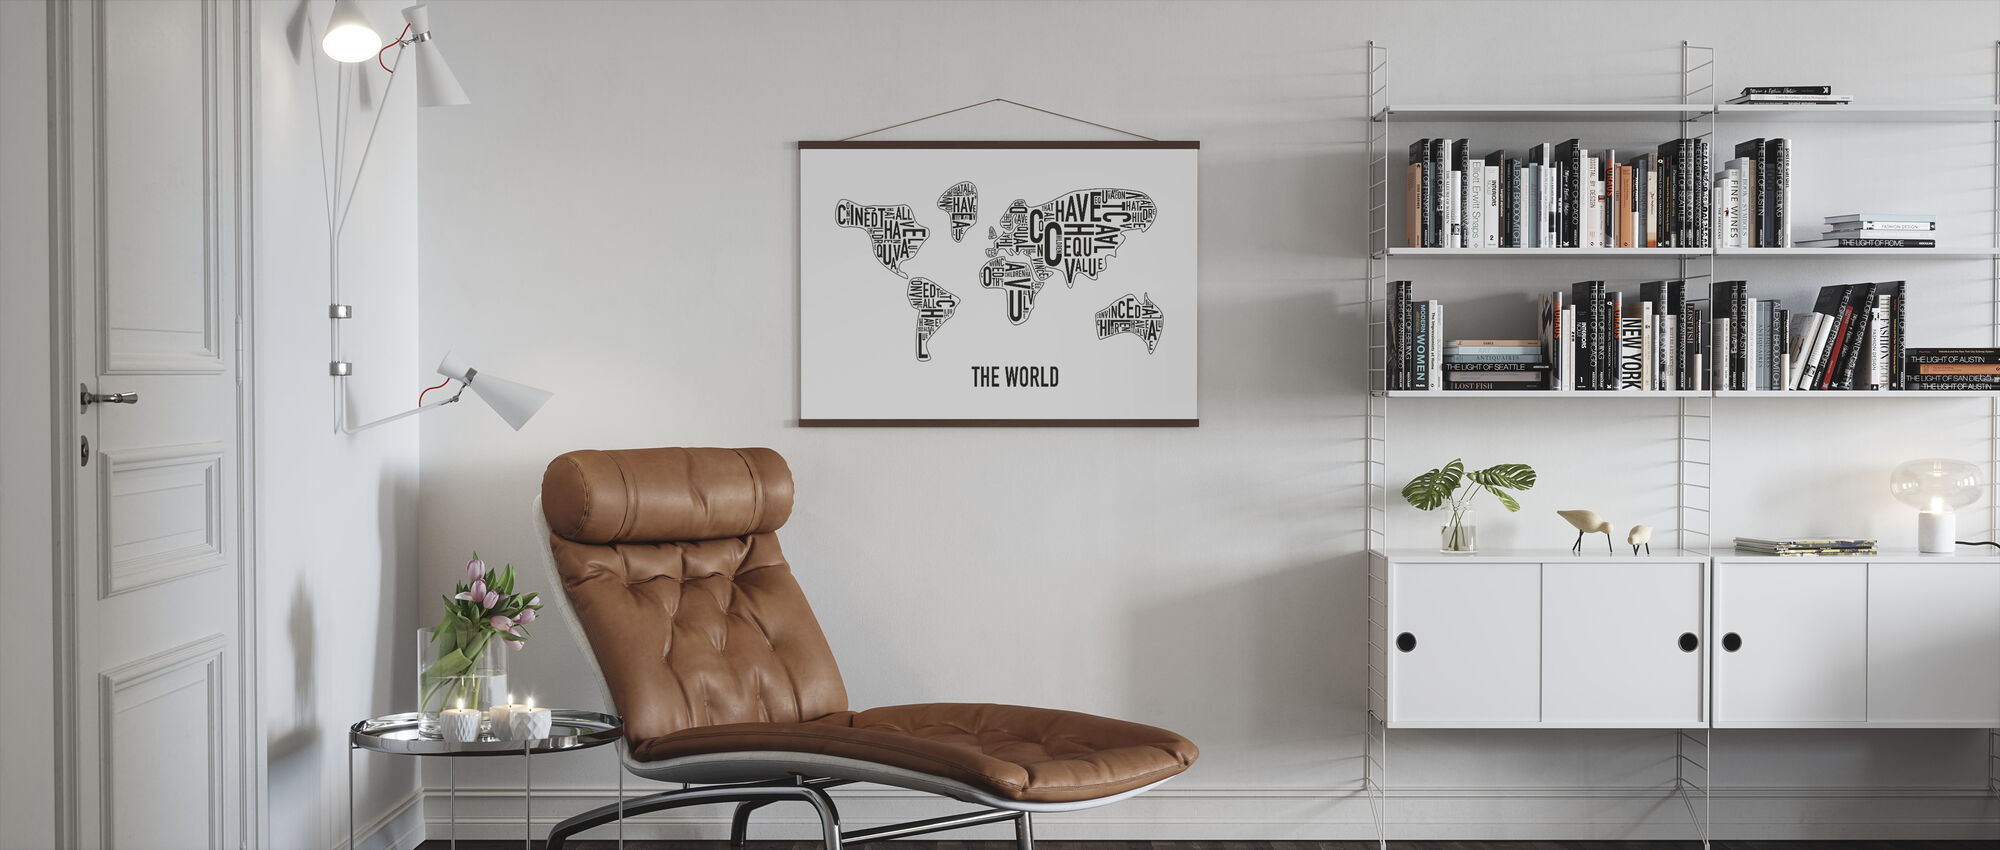 The World - Poster - Living Room